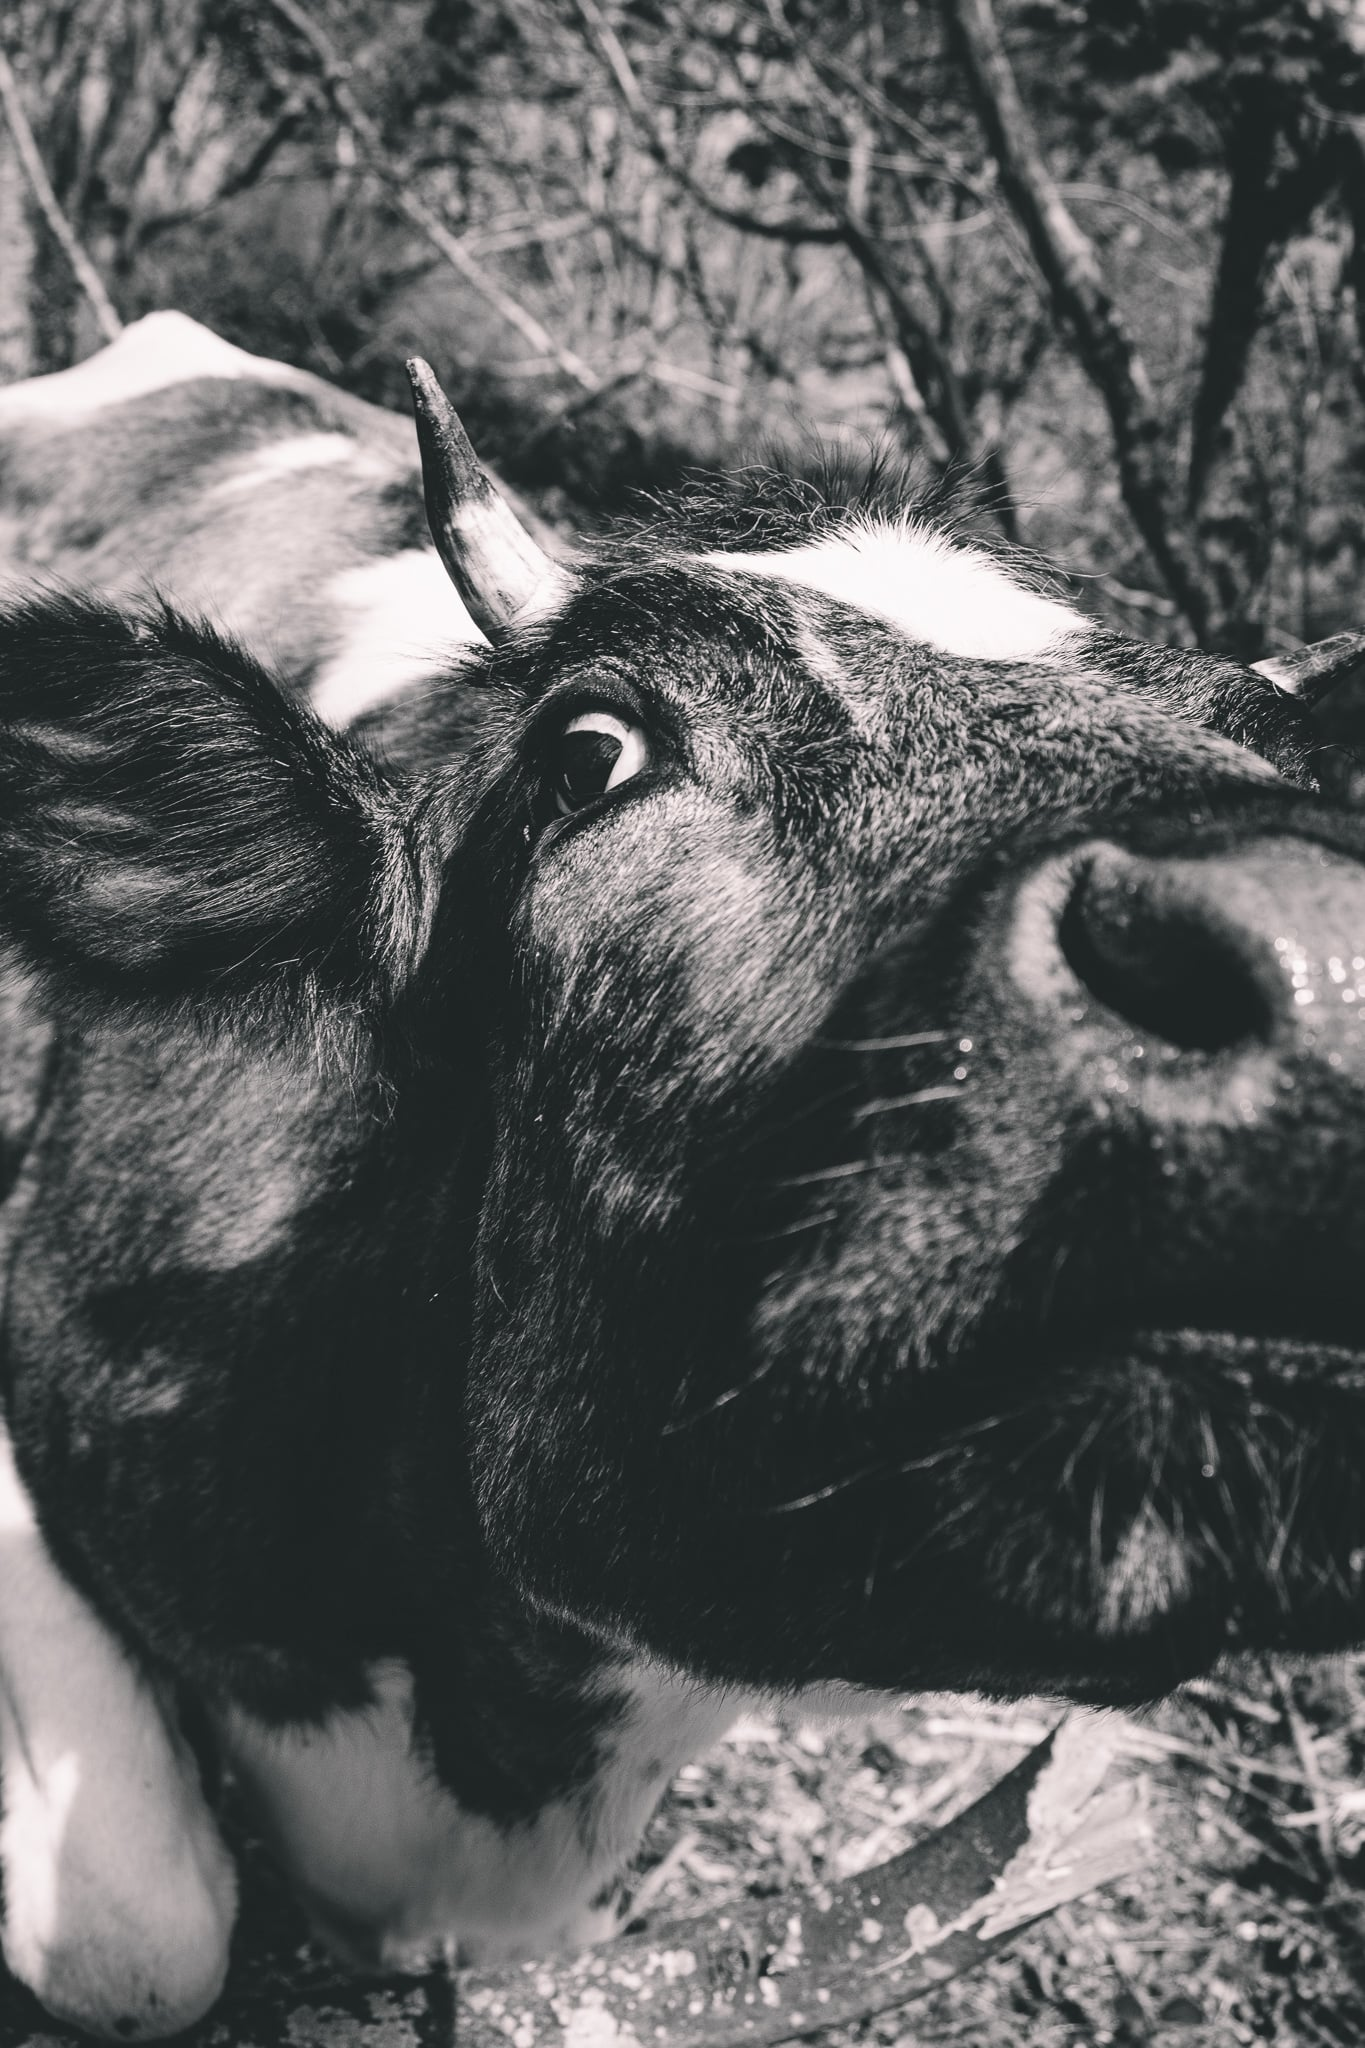 Cattle looking up at the camera with a wet nose